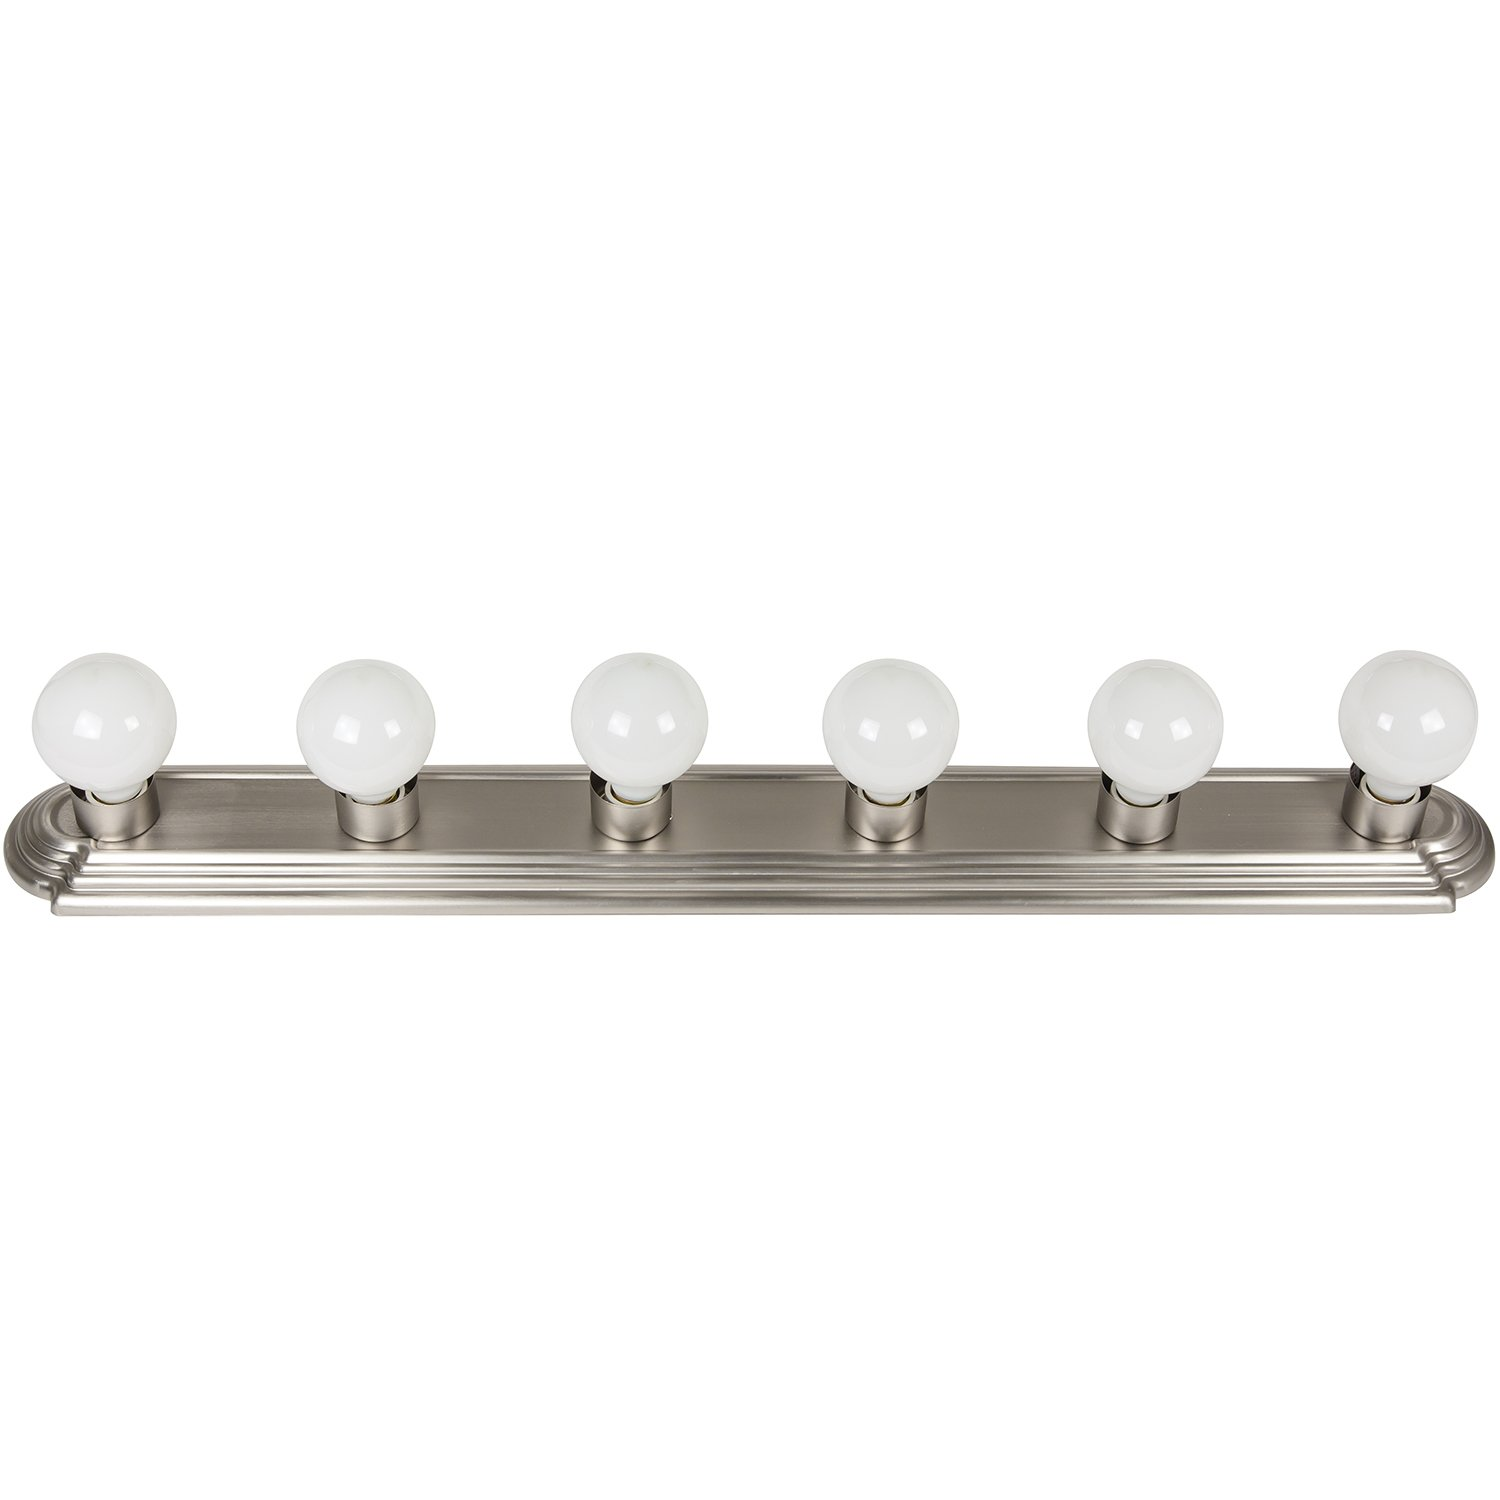 Sunlite 45200-SU Bathroom Vanity Light Fixture 36 Globe Style Wall Fixture 6 Lights Brushed Nickel Finish